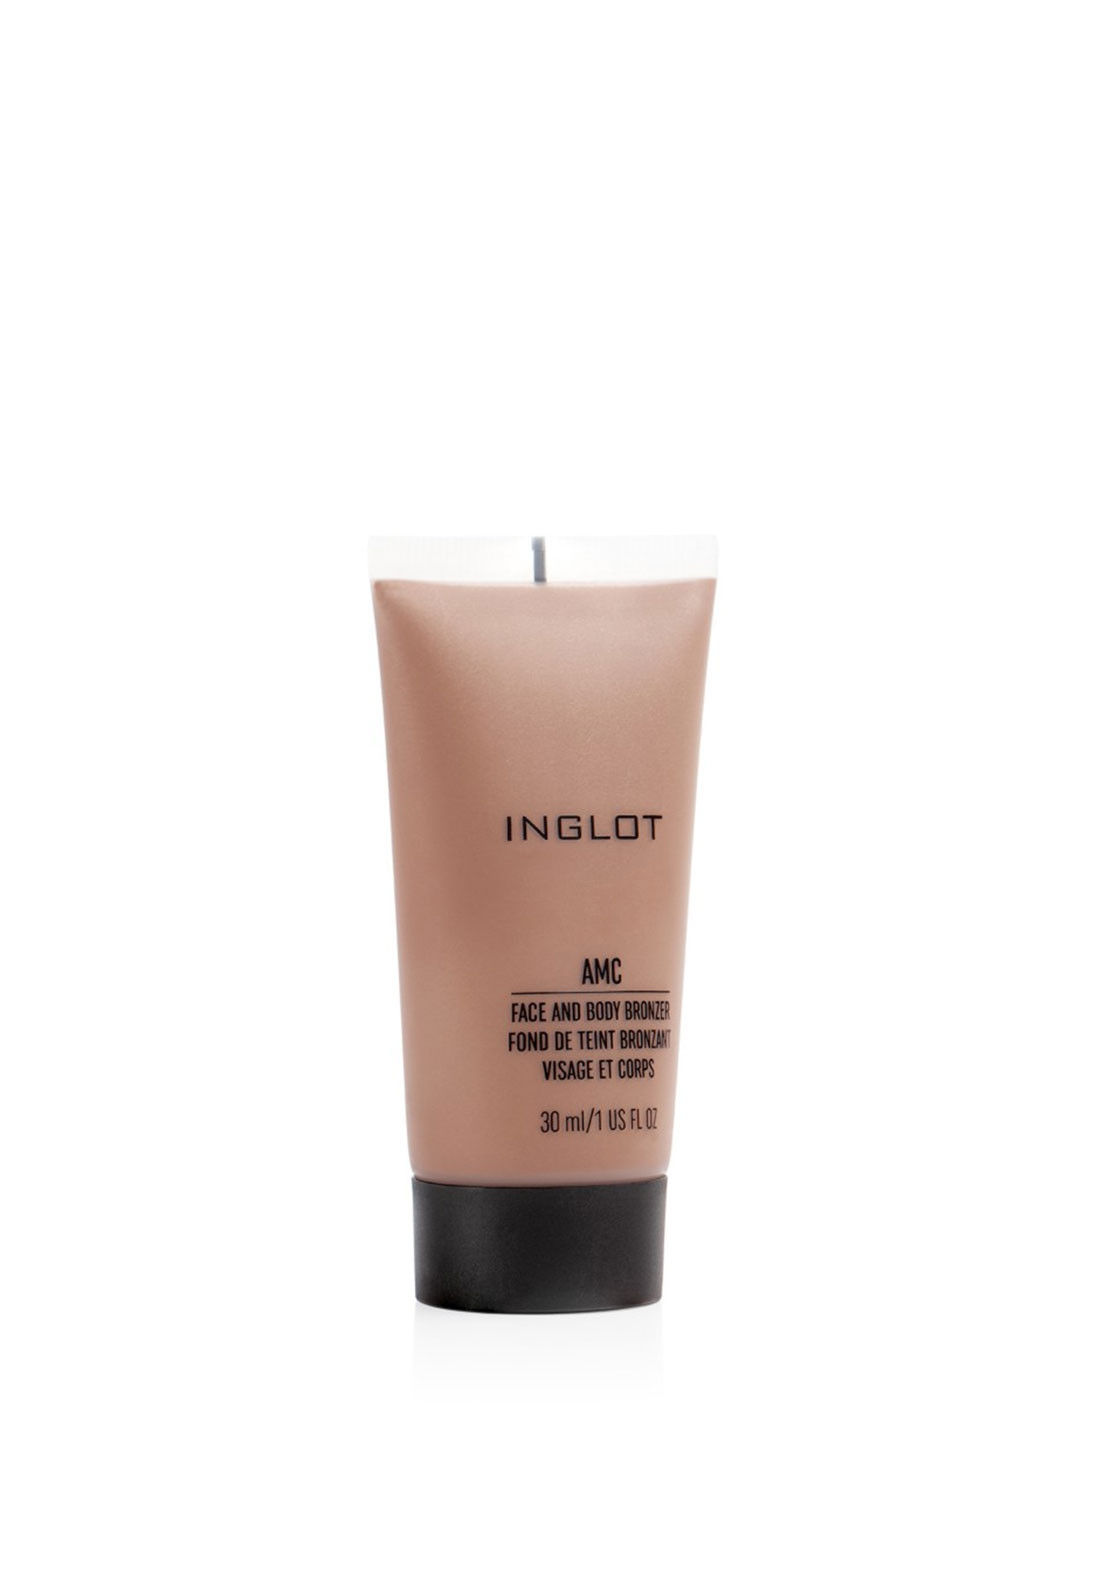 Inglot AMC Face and Body Bronzer, 95